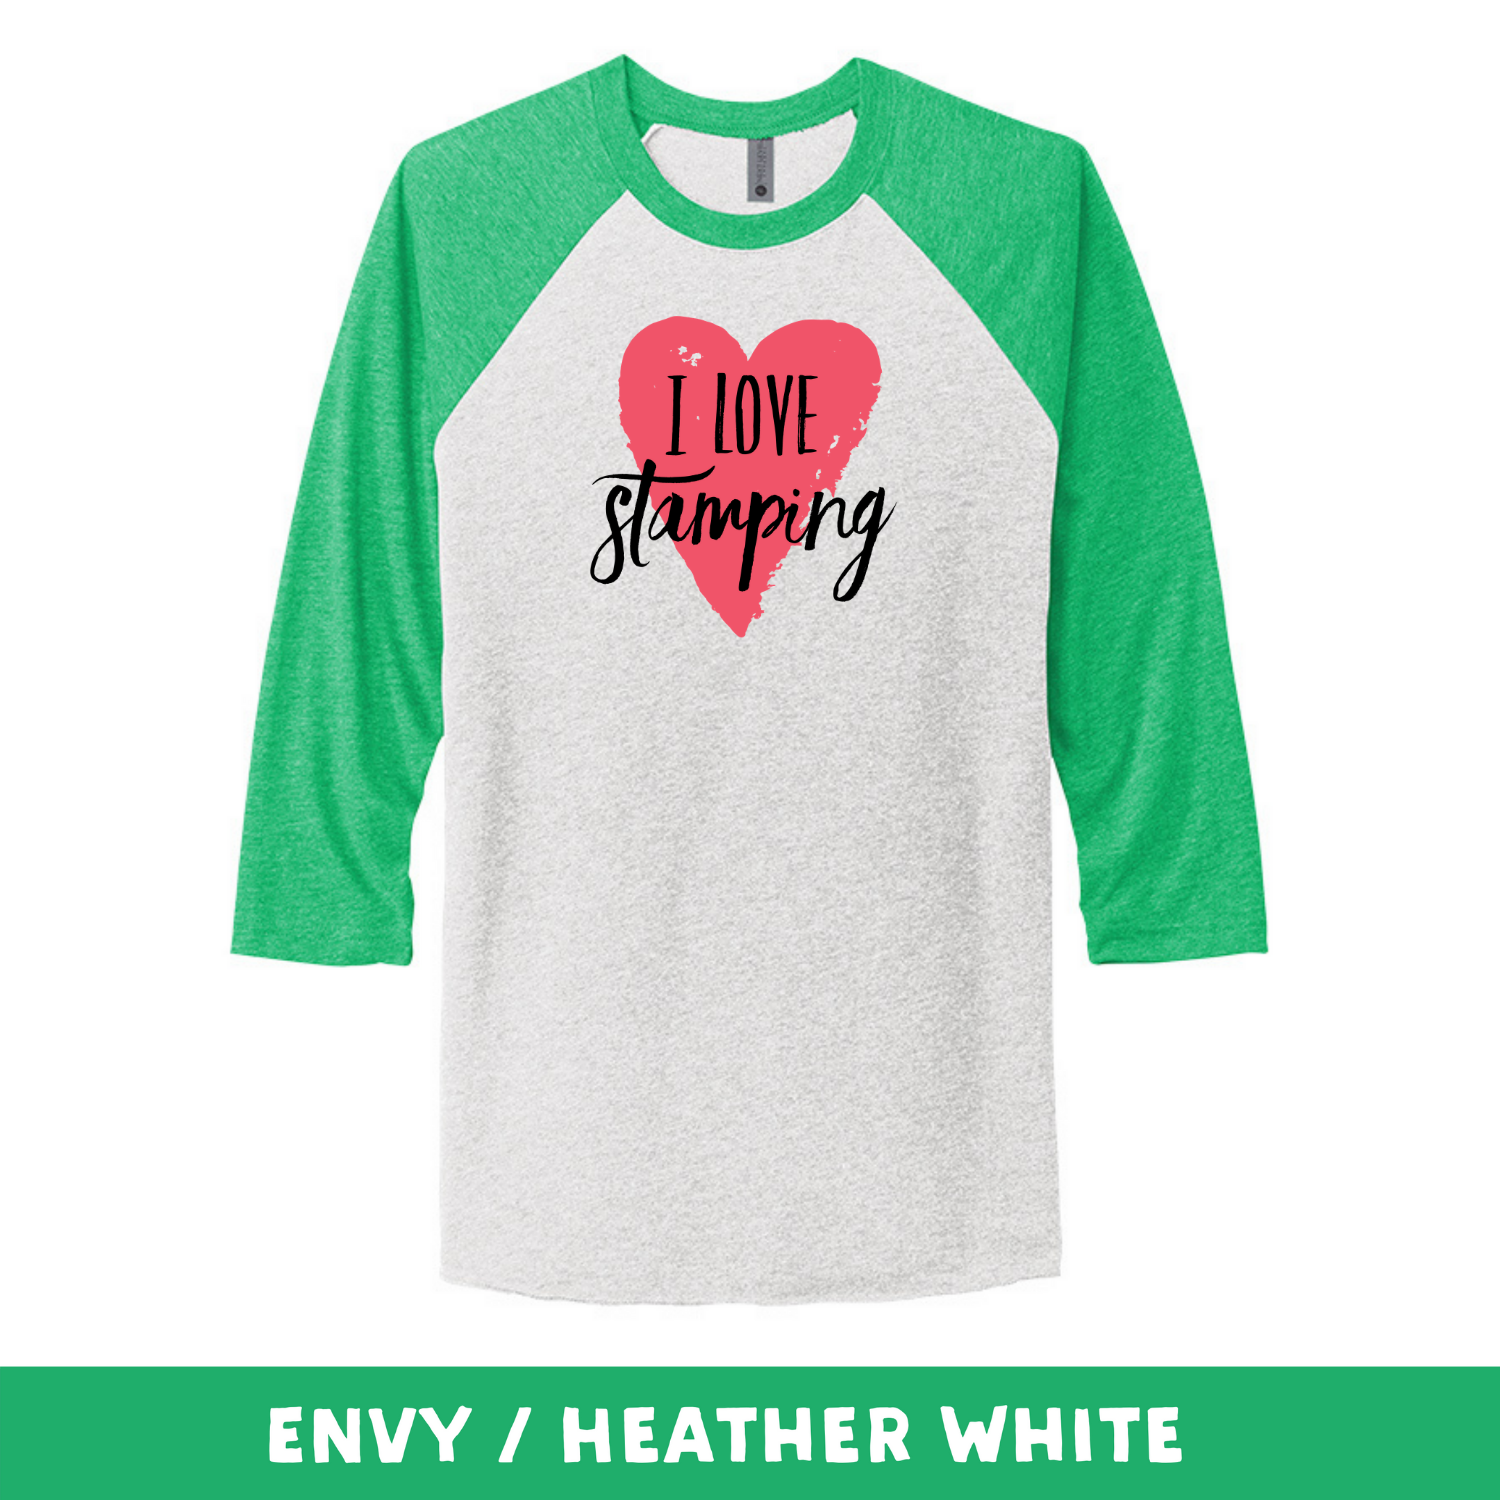 Envy Heather White - Unisex Tri-Blend 3/4 Sleeve Raglan Tee - I Love Stamping